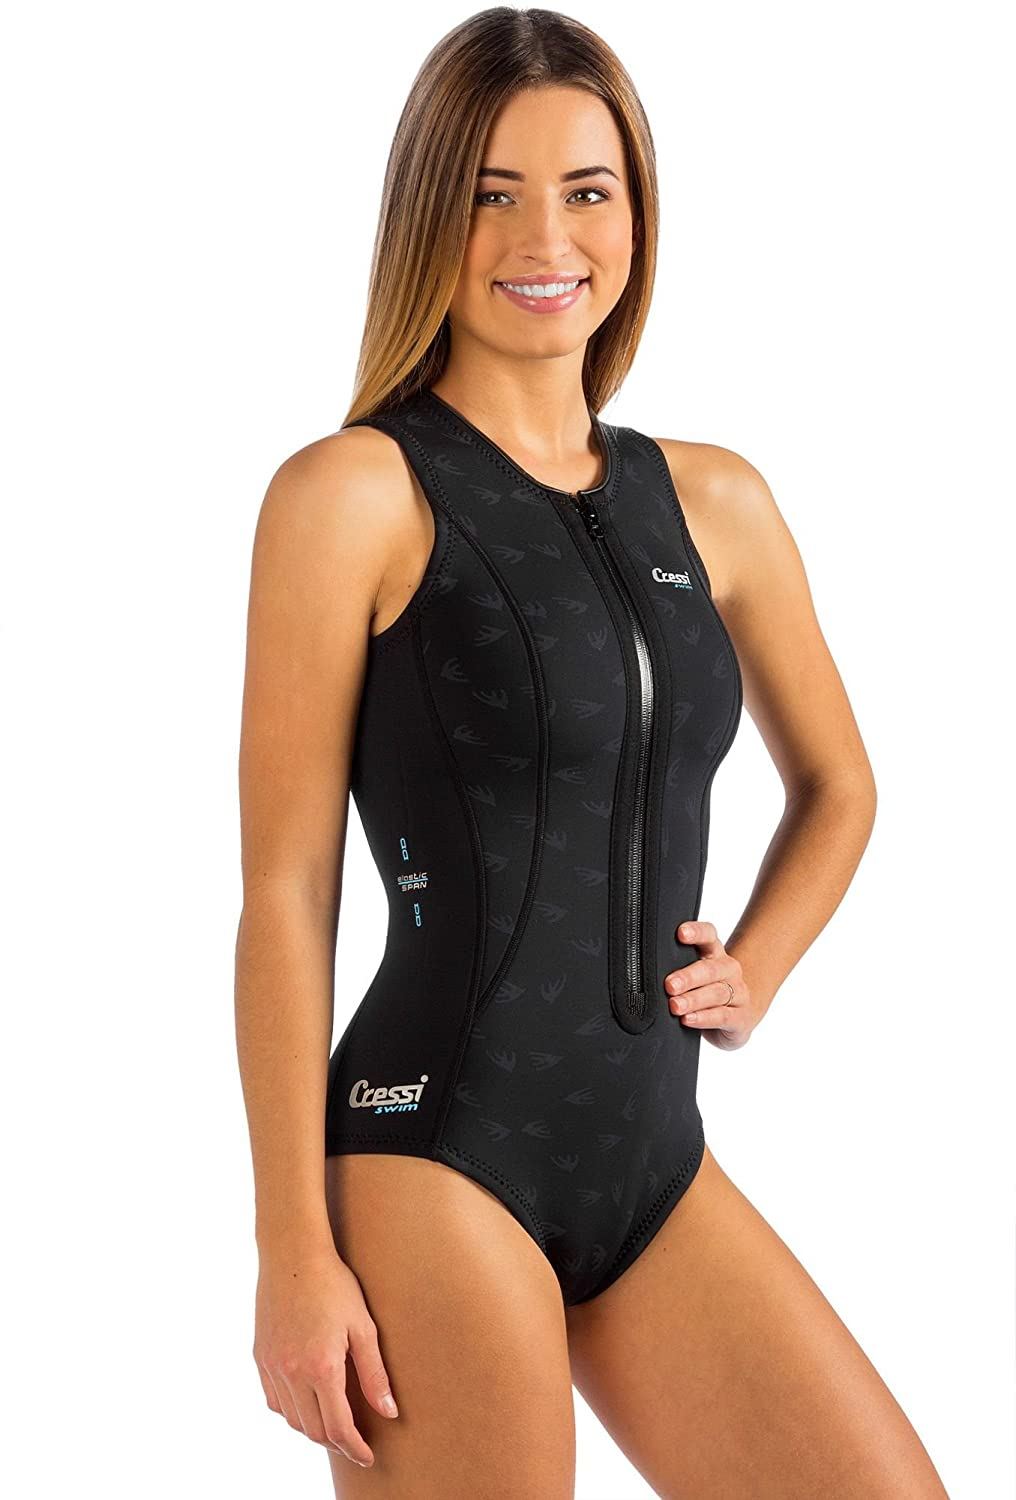 Cressi Women's Termico Premium Swimsuit Ultraspan 2 mm